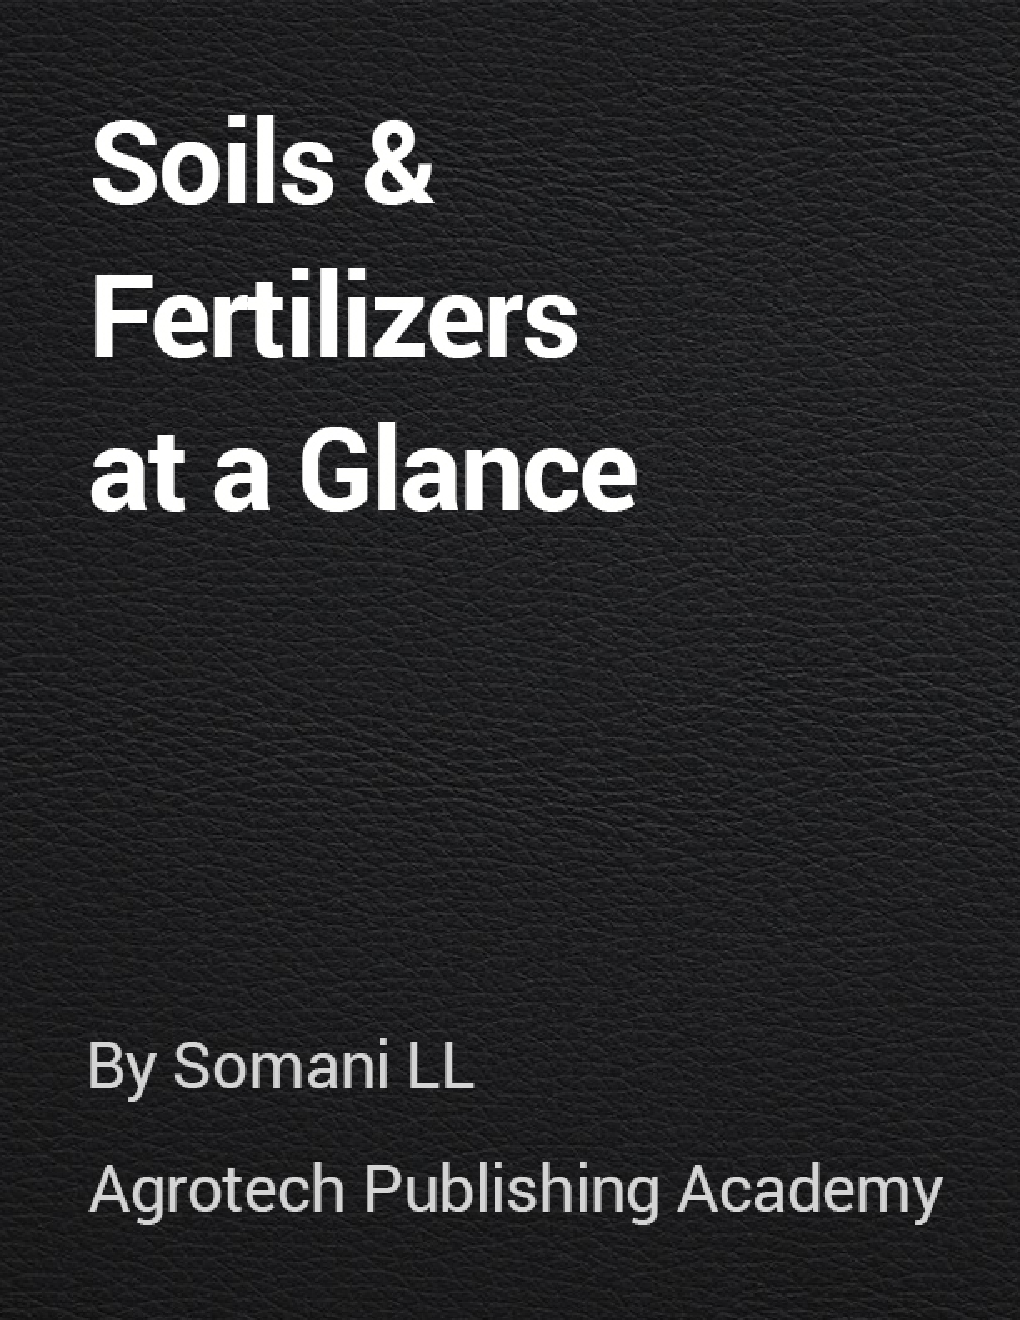 Soils and Fertilizers at a Glance - Page 1